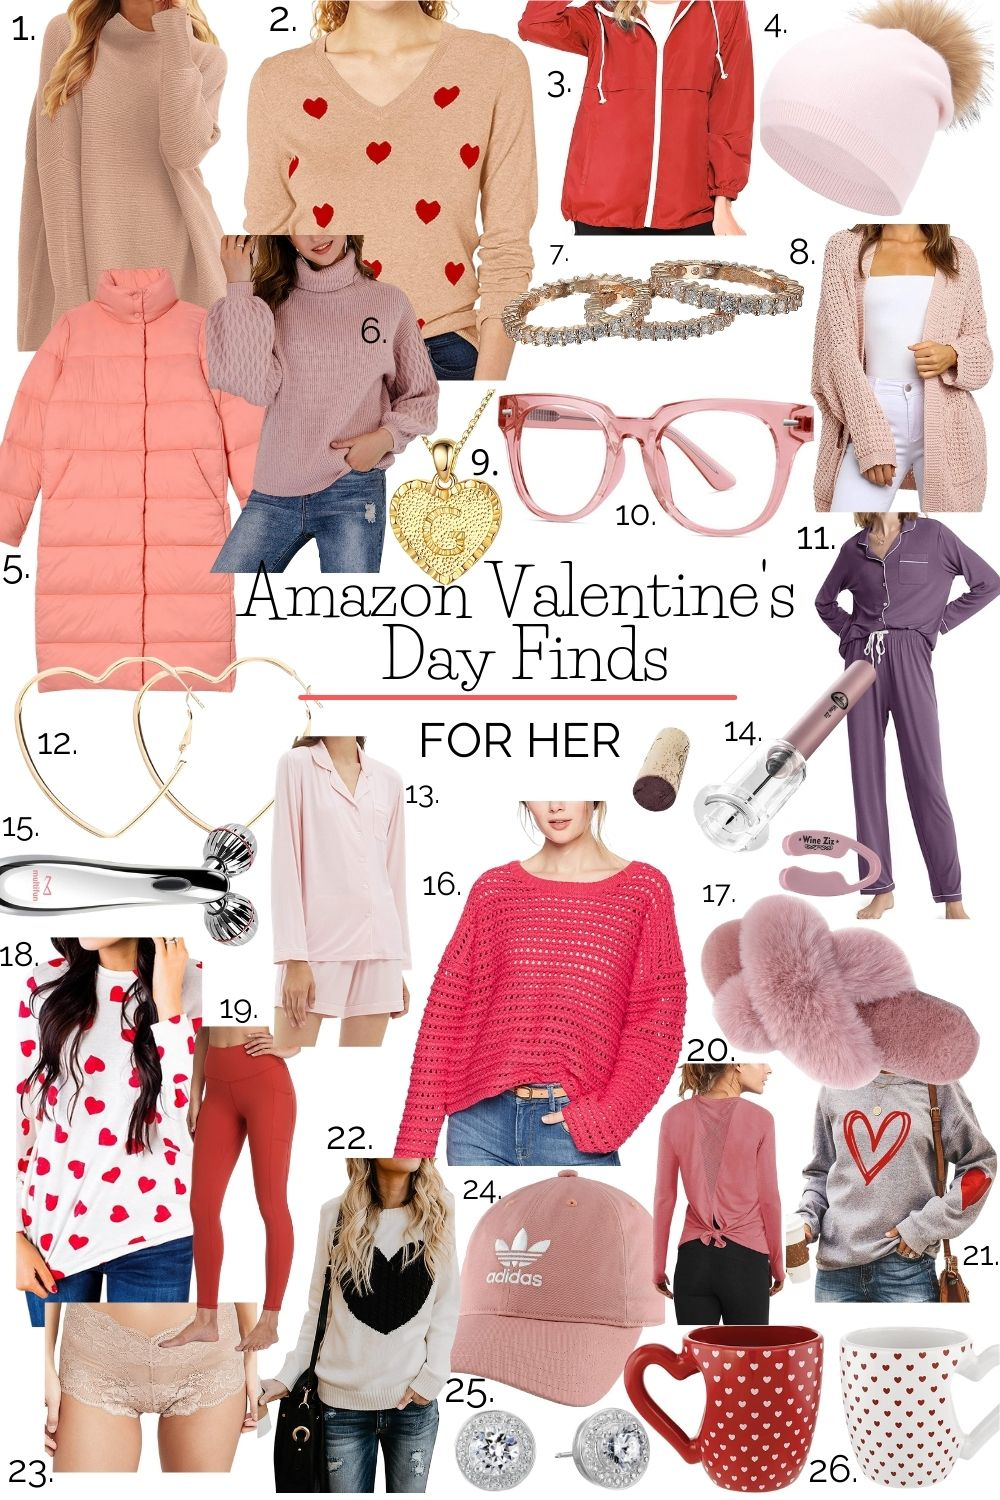 Amazon Valentine's Day Favorites for Her (or You!)